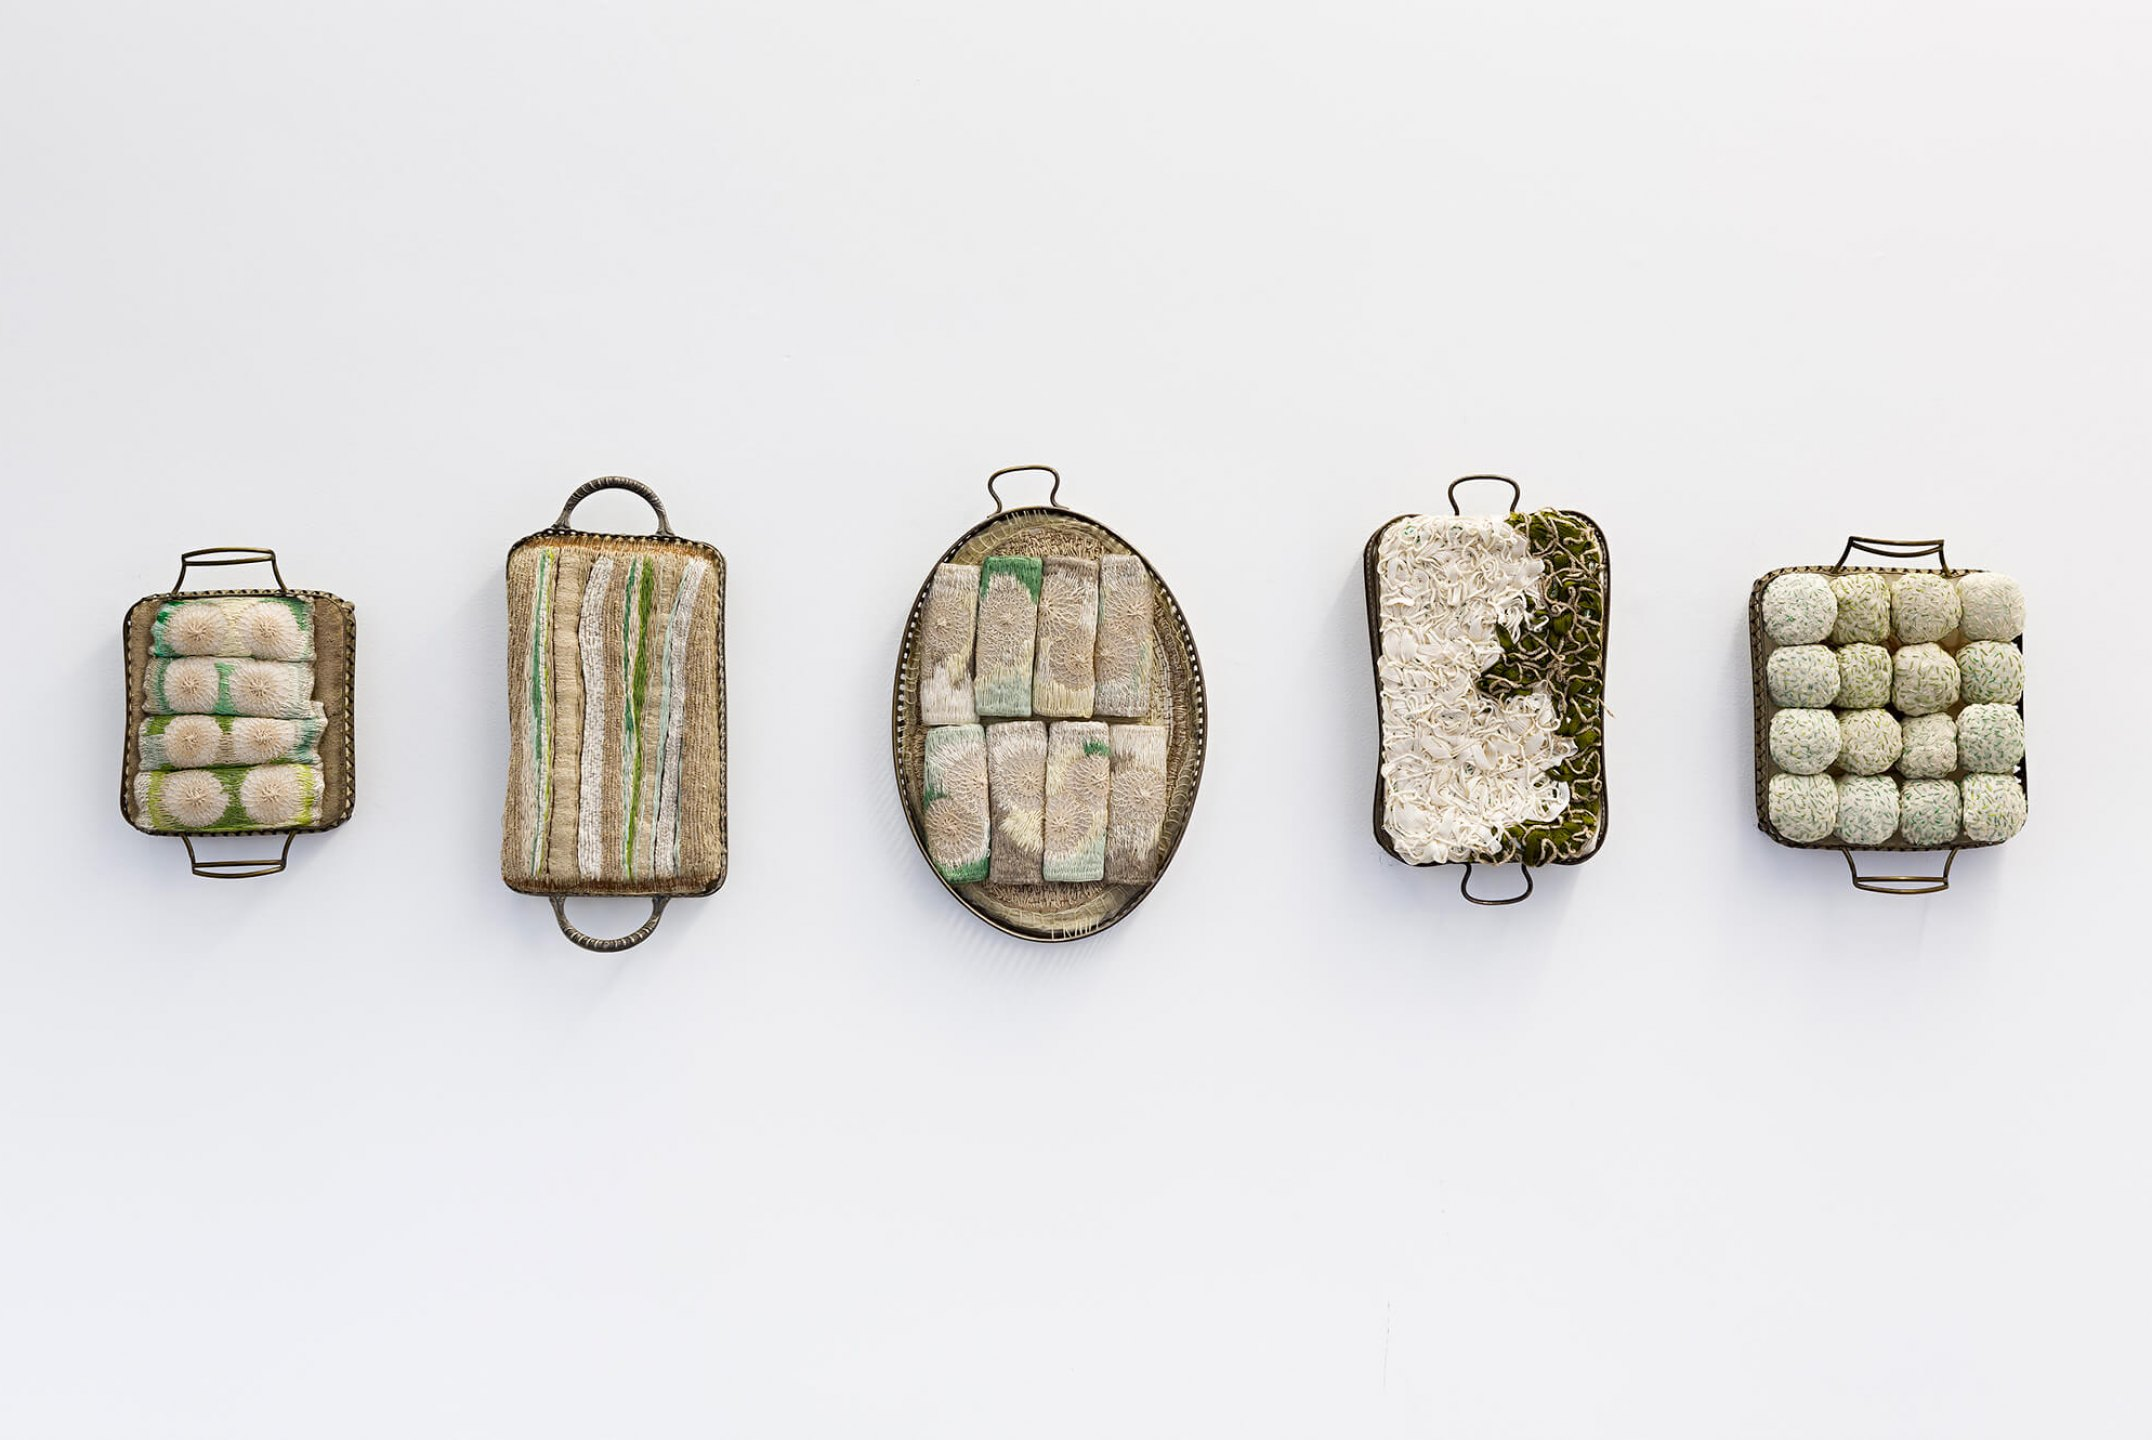 f.marquespeteado, <em>untitled, from Bancarrota series</em>, 2002, platter holder, muslin and linen threads, 8 × 43 × 20 cm - Mendes Wood DM